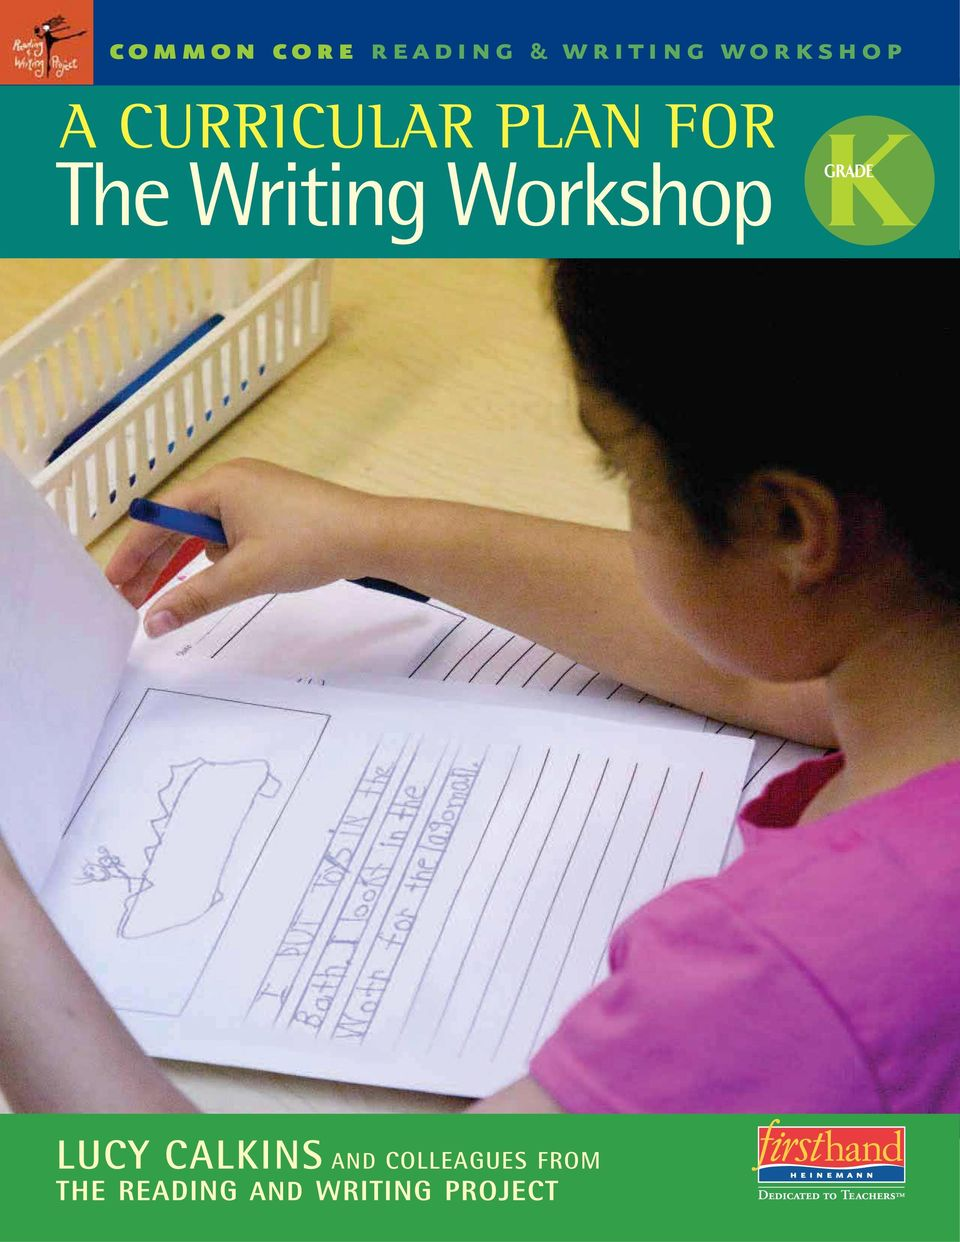 Workshop KGRADE LUCY CALKINS AND